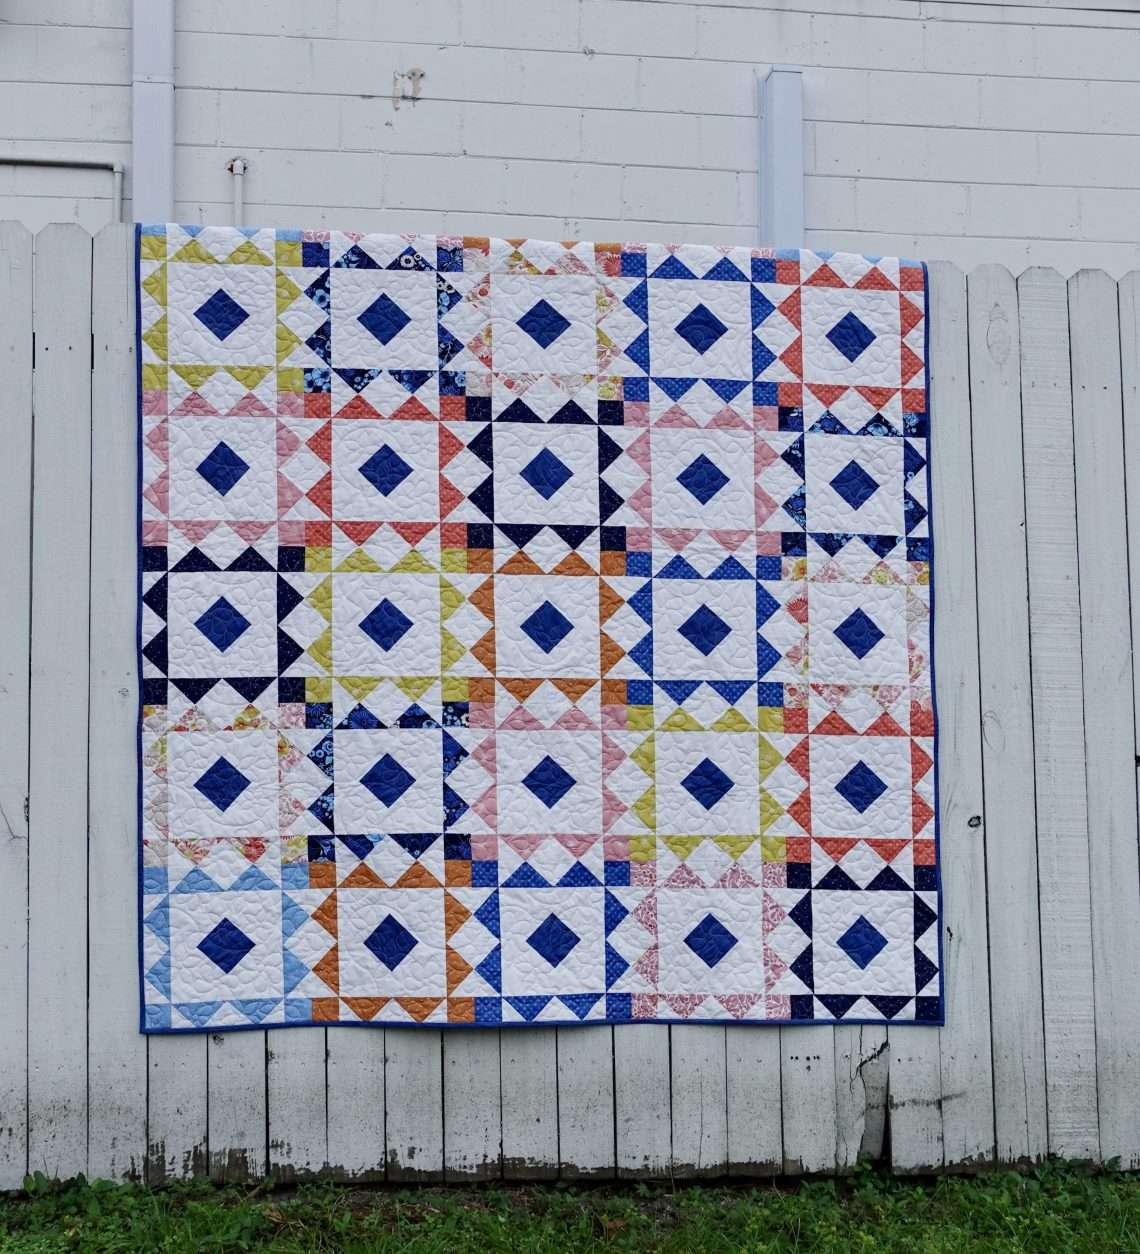 Reverberate modern quilt pattern, fat quarter quilt, brightly colored quilt, flying geese quilt, quilting tutorial, fat quarter fabrics, homemadeemilyjane